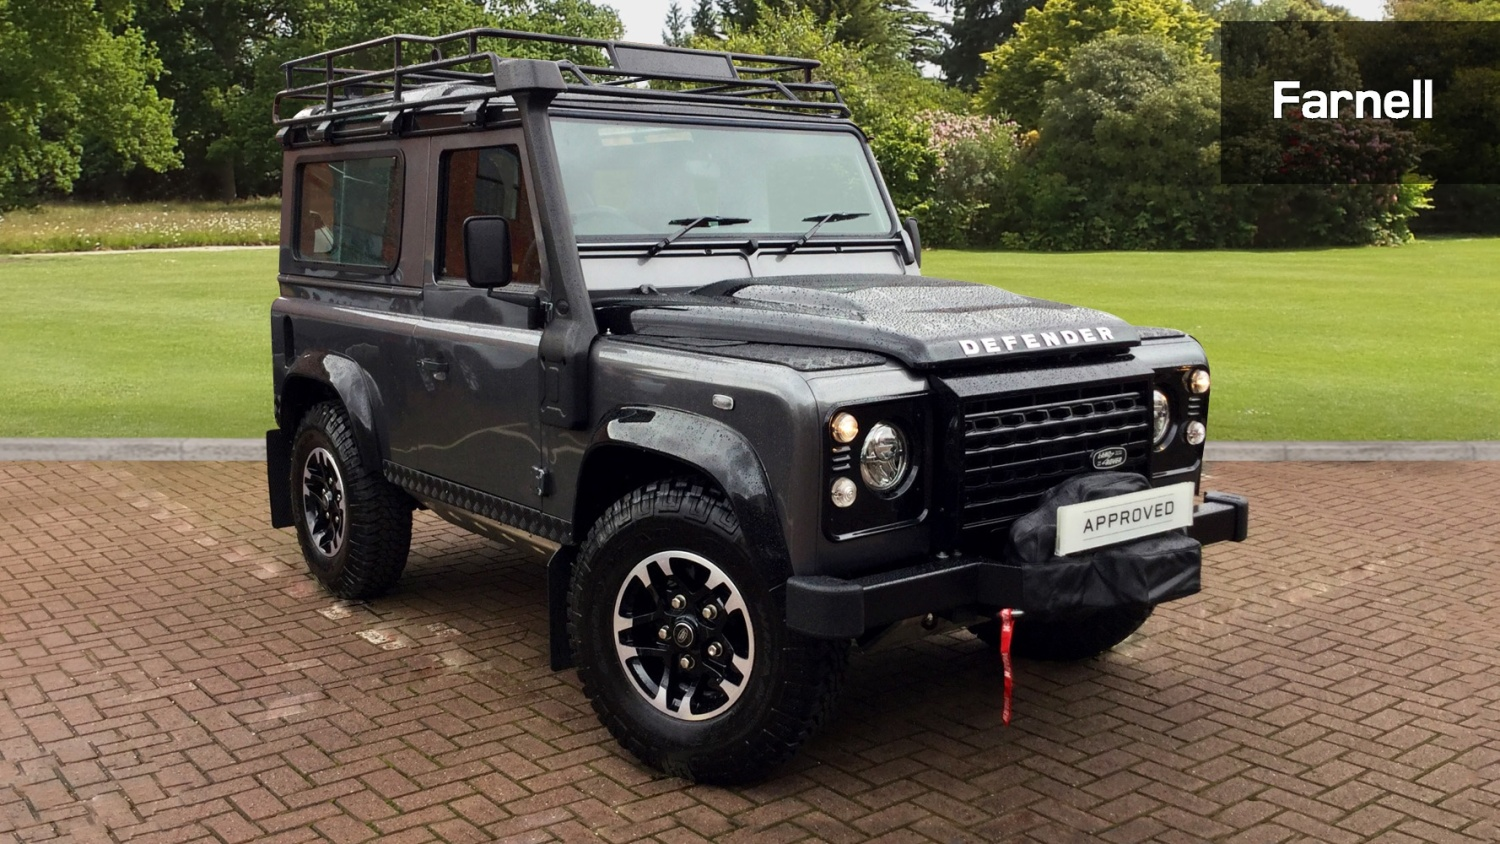 Used Land Rover Defender 110 Lwb Diesel Special Editions